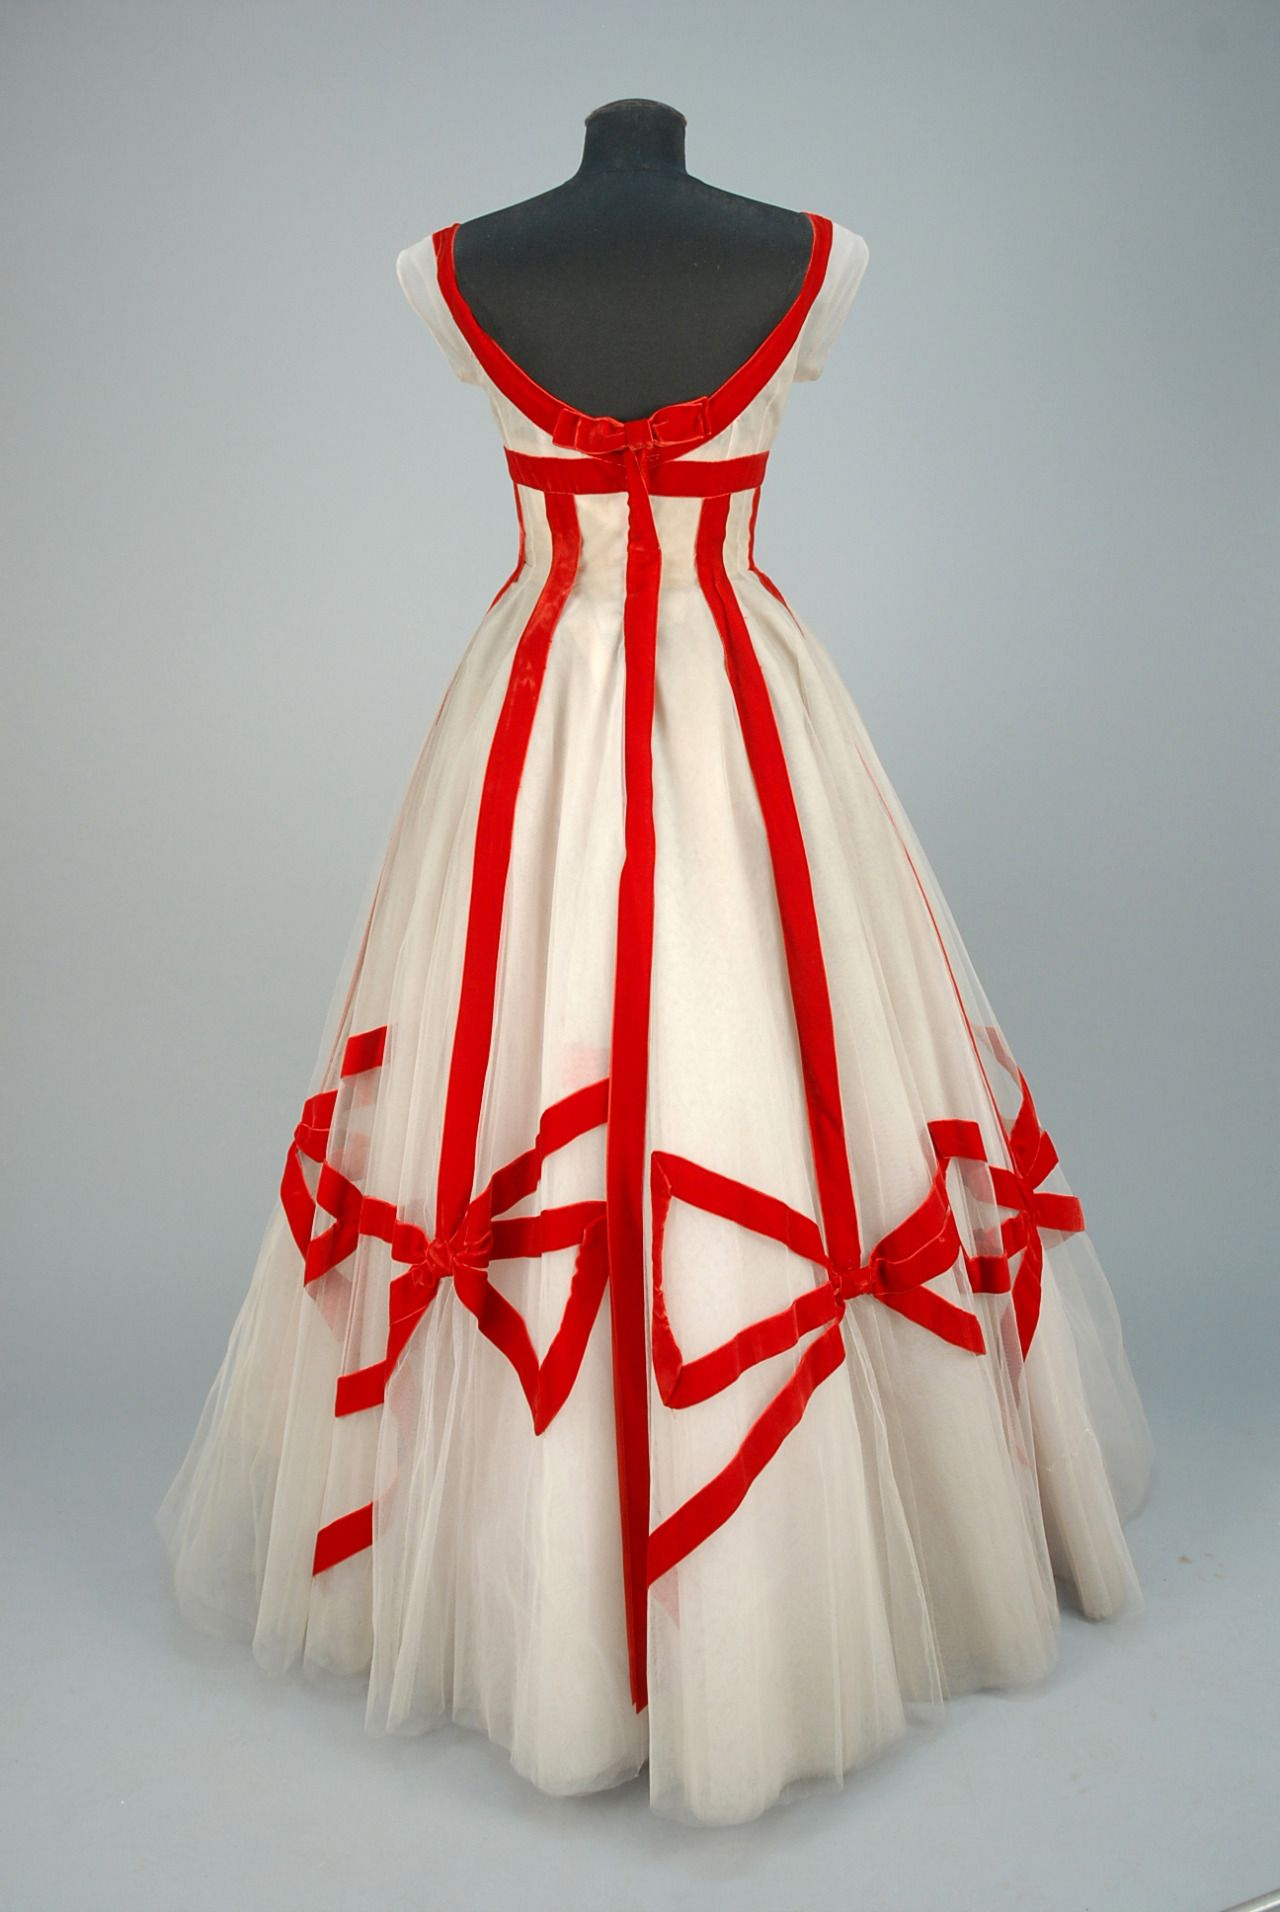 Ann lowe ball gown us from whitaker auctions fashion